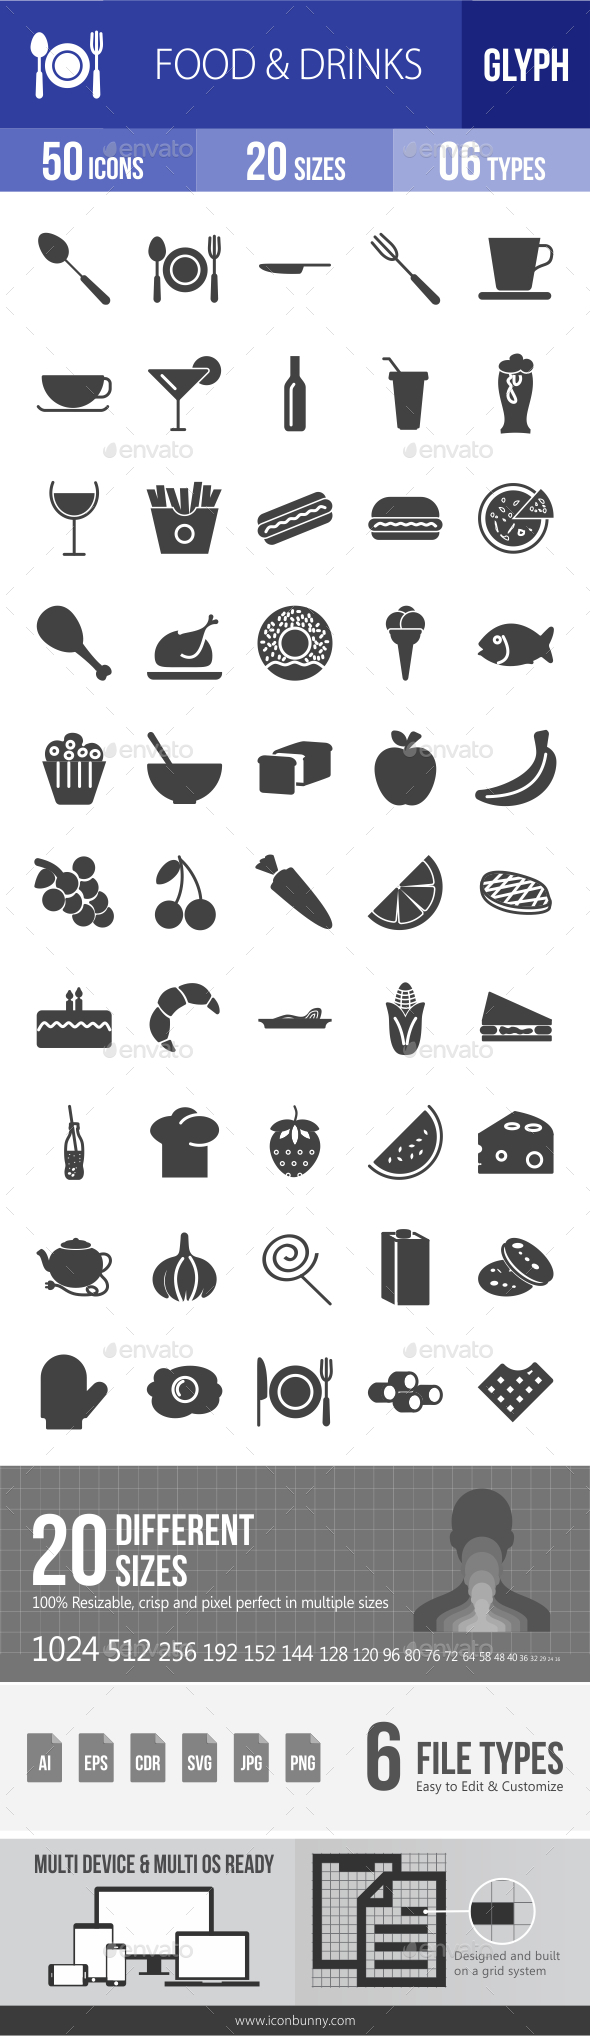 Food & Drinks Glyph Icons